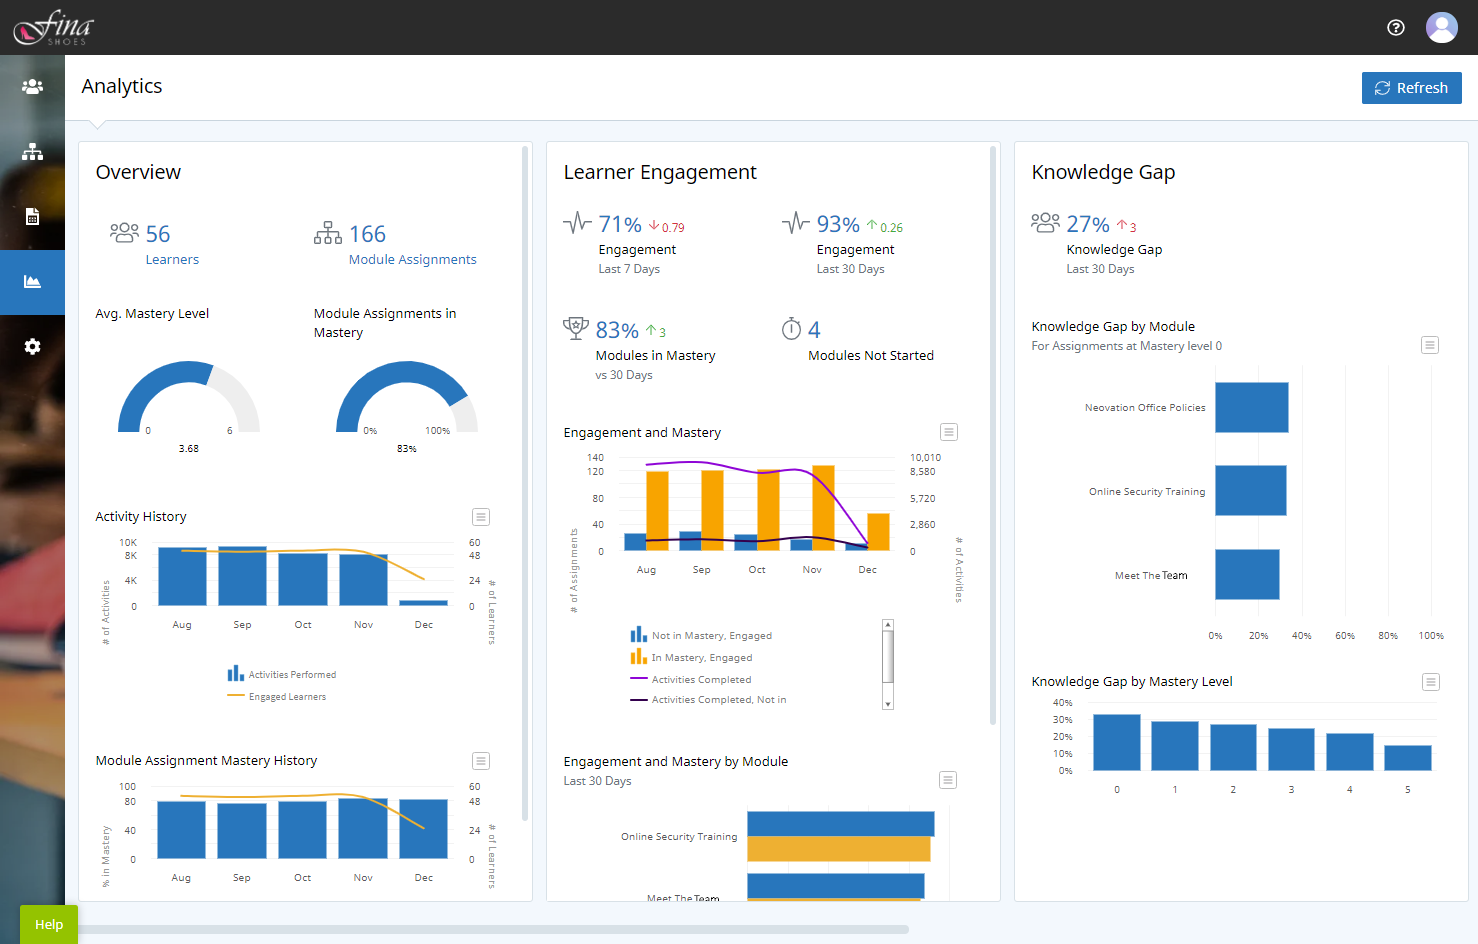 Analytics Dashboard with three panels. From left-to-right the panels are Overview, Learner Engagement, and Knowledge Gap. Each panel has summary metrics at the top and charts below.